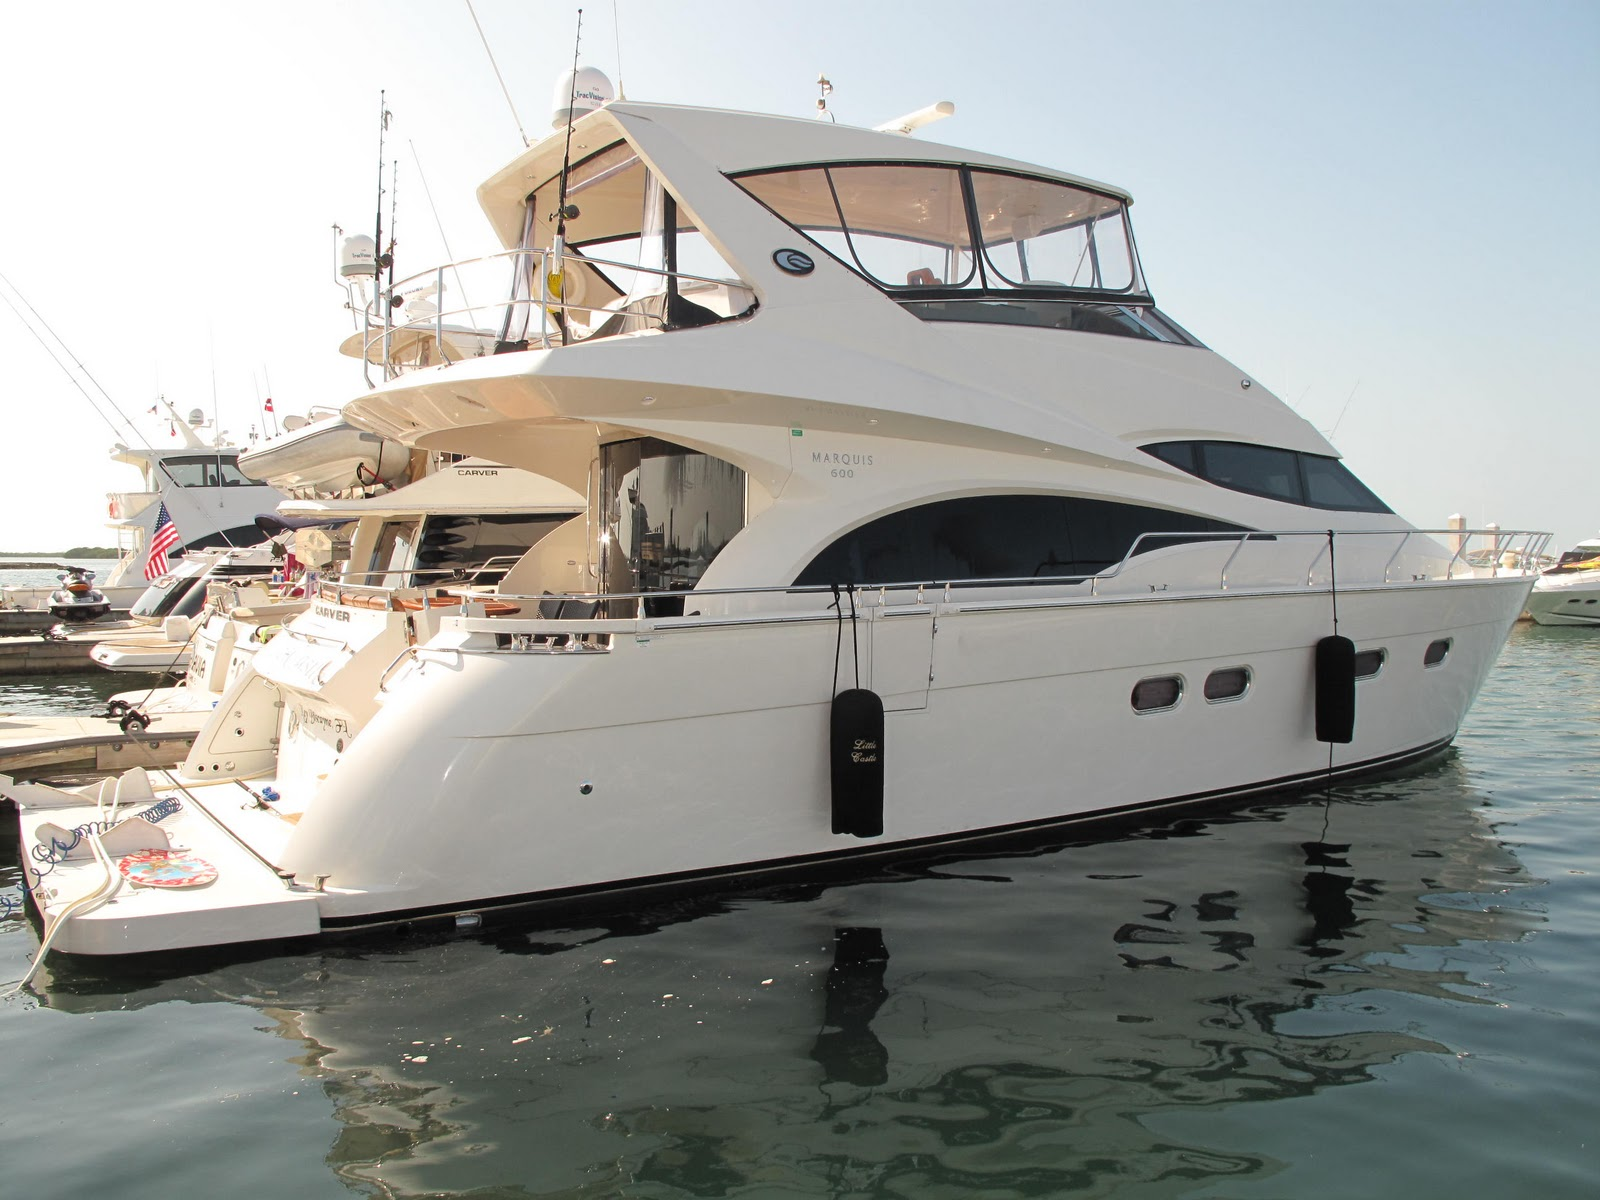 golden yacht charters beautiful  marquis yacht  rent miami yacht charters  boat rentals